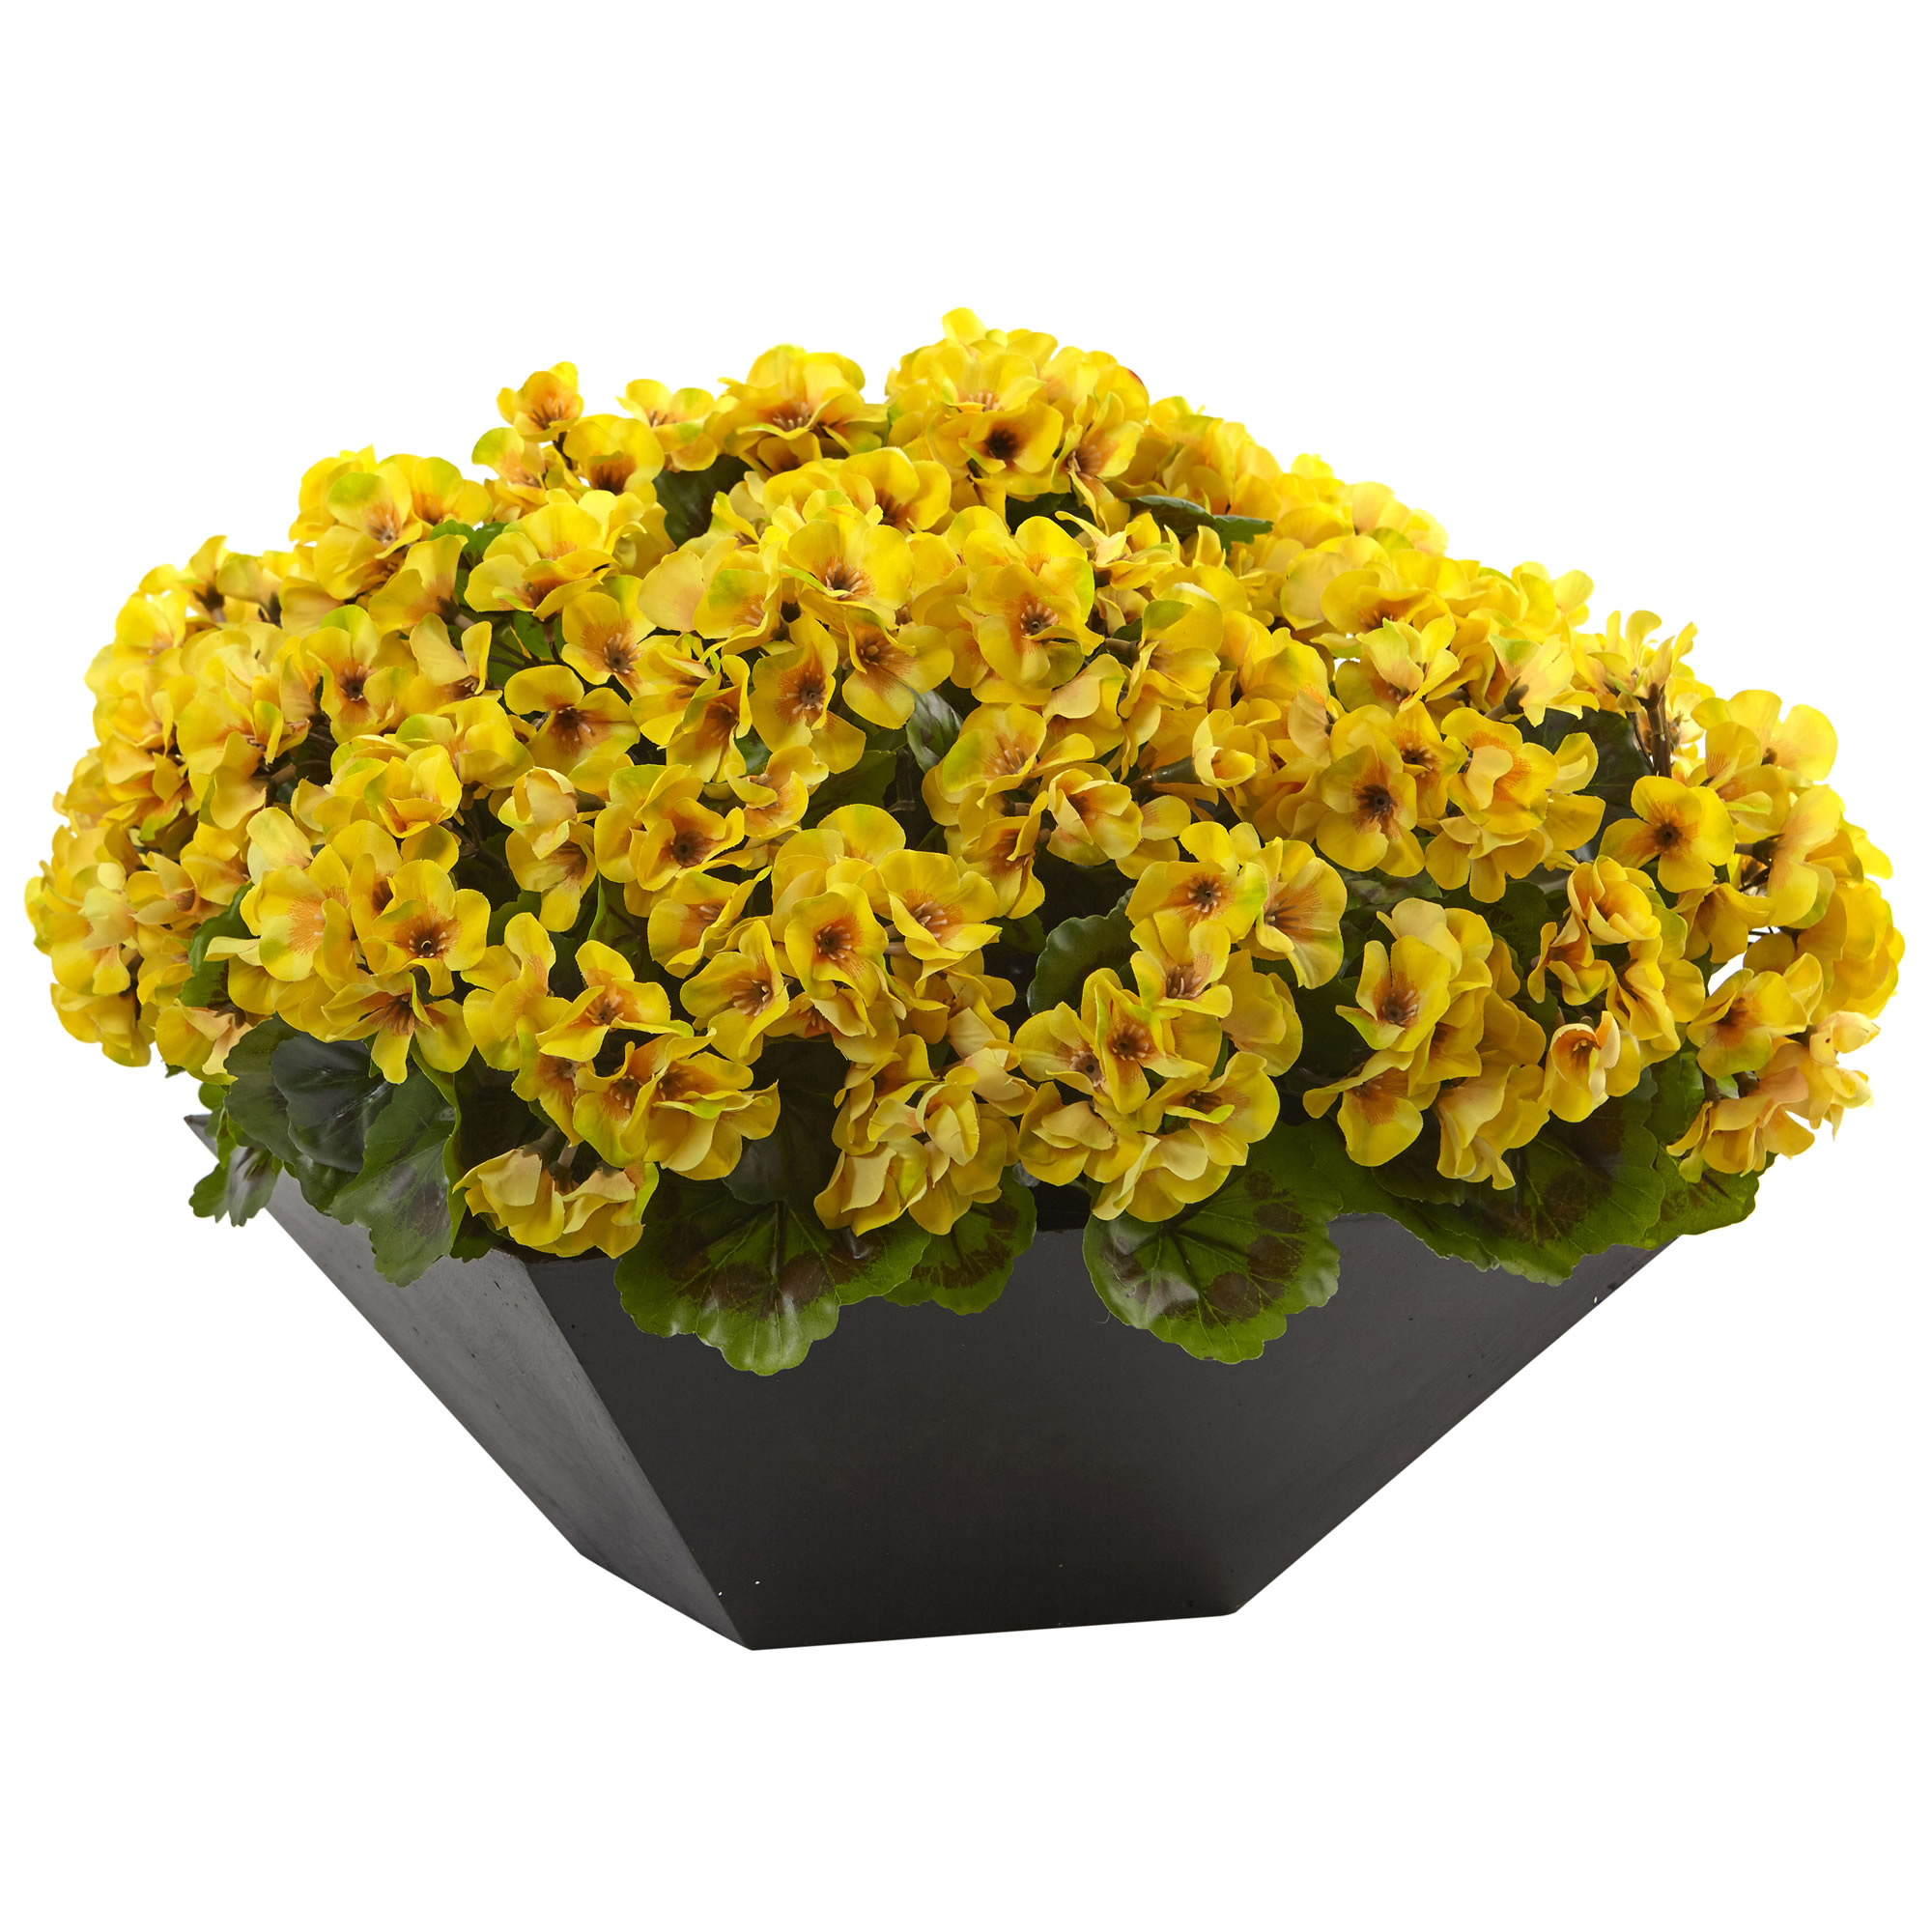 Outdoor Artificial Flowers   Fake Outdoor Flowers